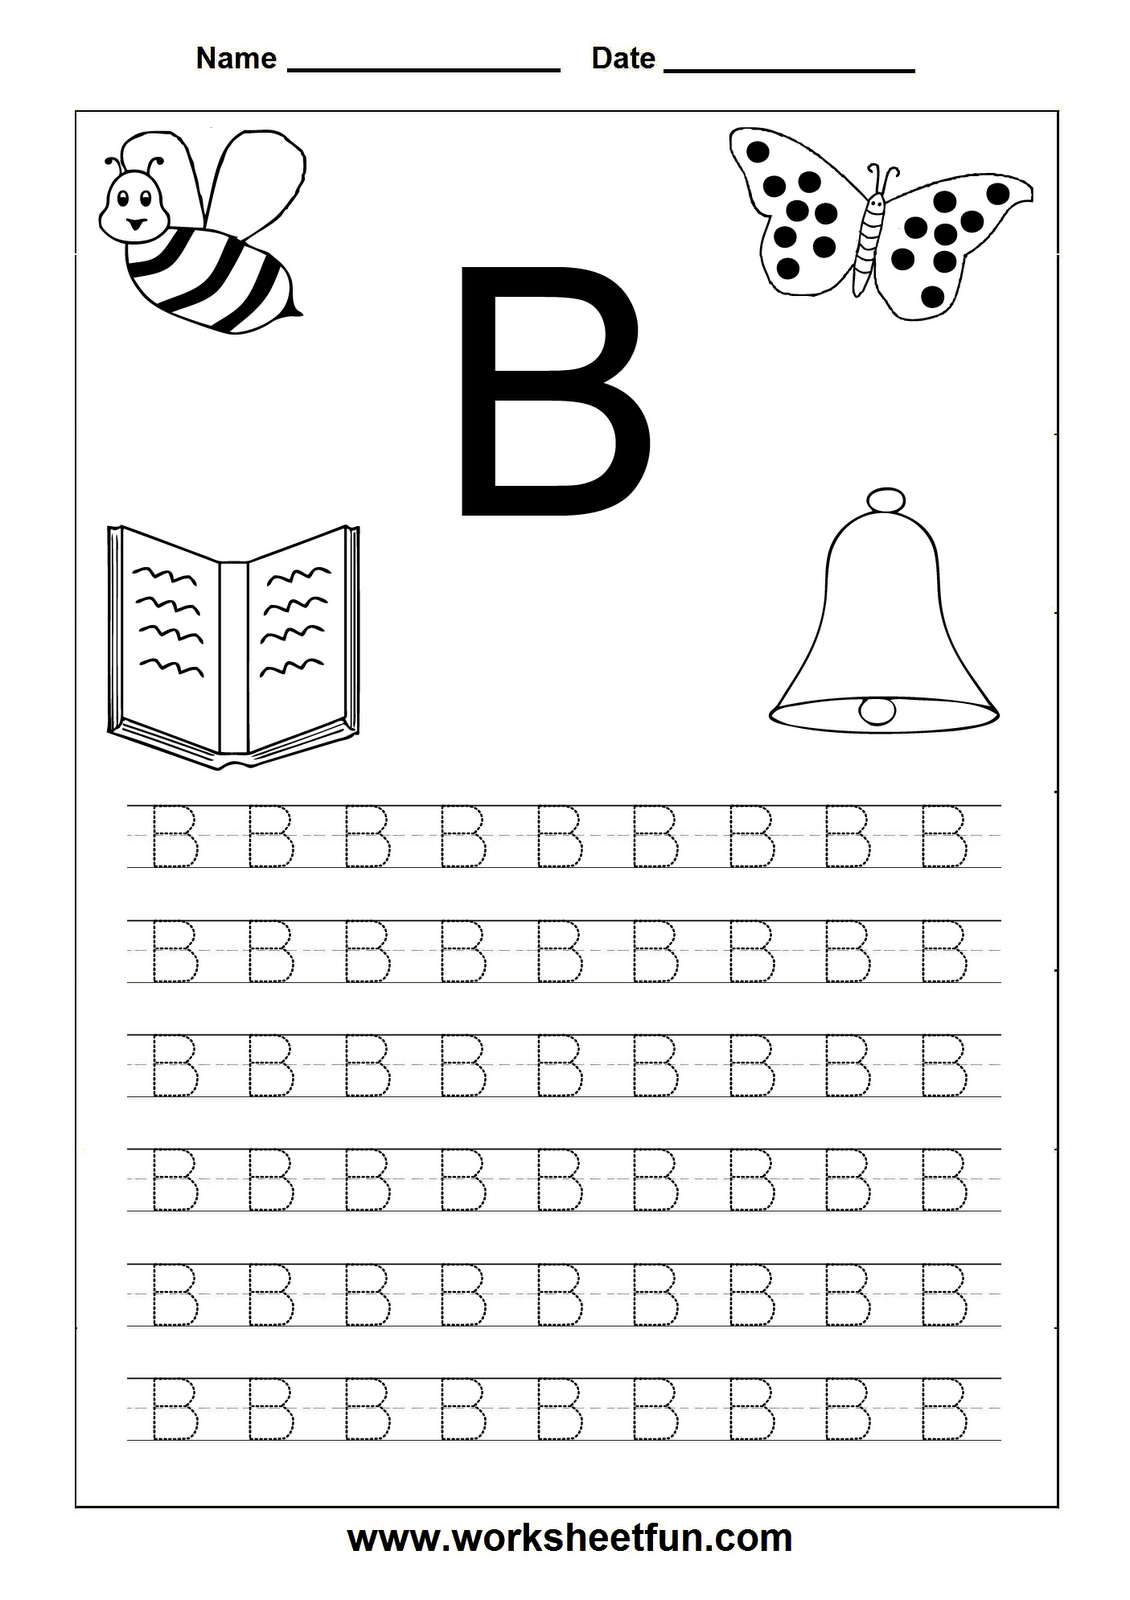 math worksheet : capital letter writing worksheets  homeschooling alphabet  : Letter B Worksheets Kindergarten